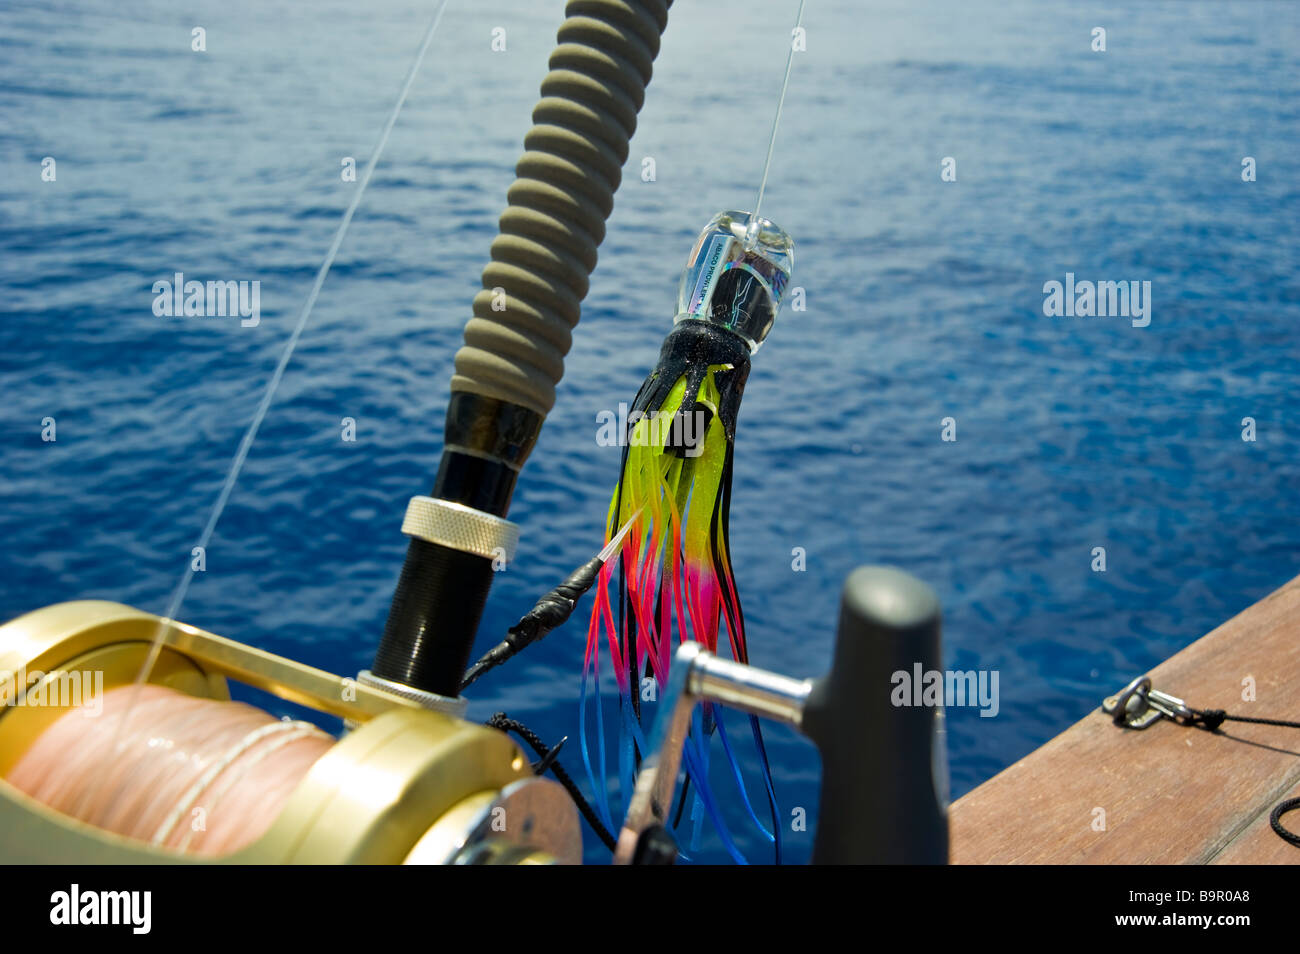 Big game fishing reel with lure on fishing boat La Réunion France | Hochsee-Angel mit Rolle und Köder auf Angelboot, Stock Photo